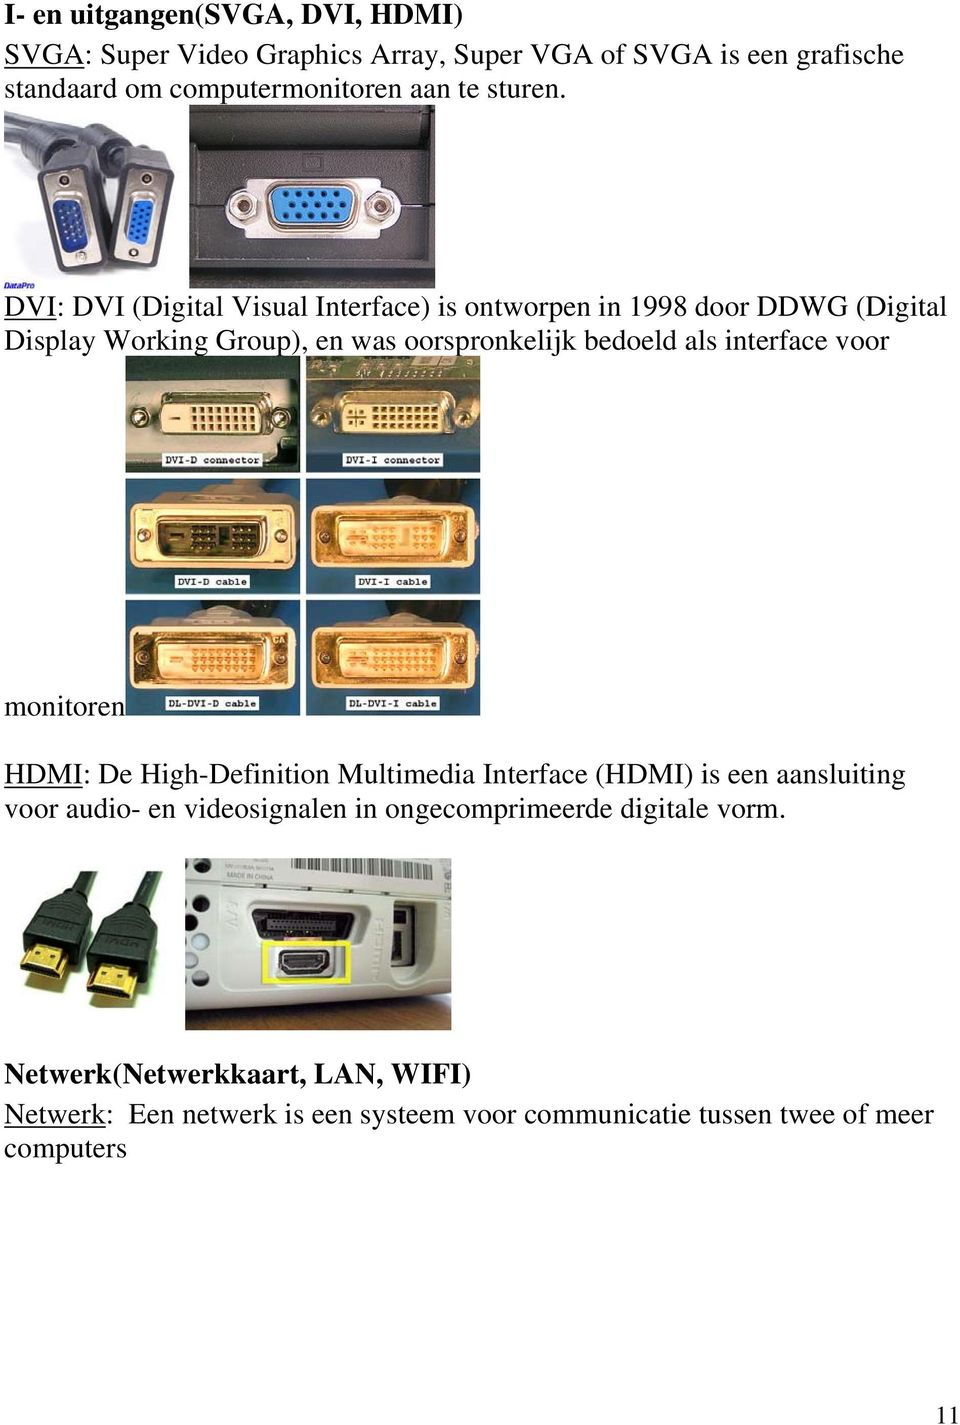 DVI: DVI (Digital Visual Interface) is ontworpen in 1998 door DDWG (Digital Display Working Group), en was oorspronkelijk bedoeld als